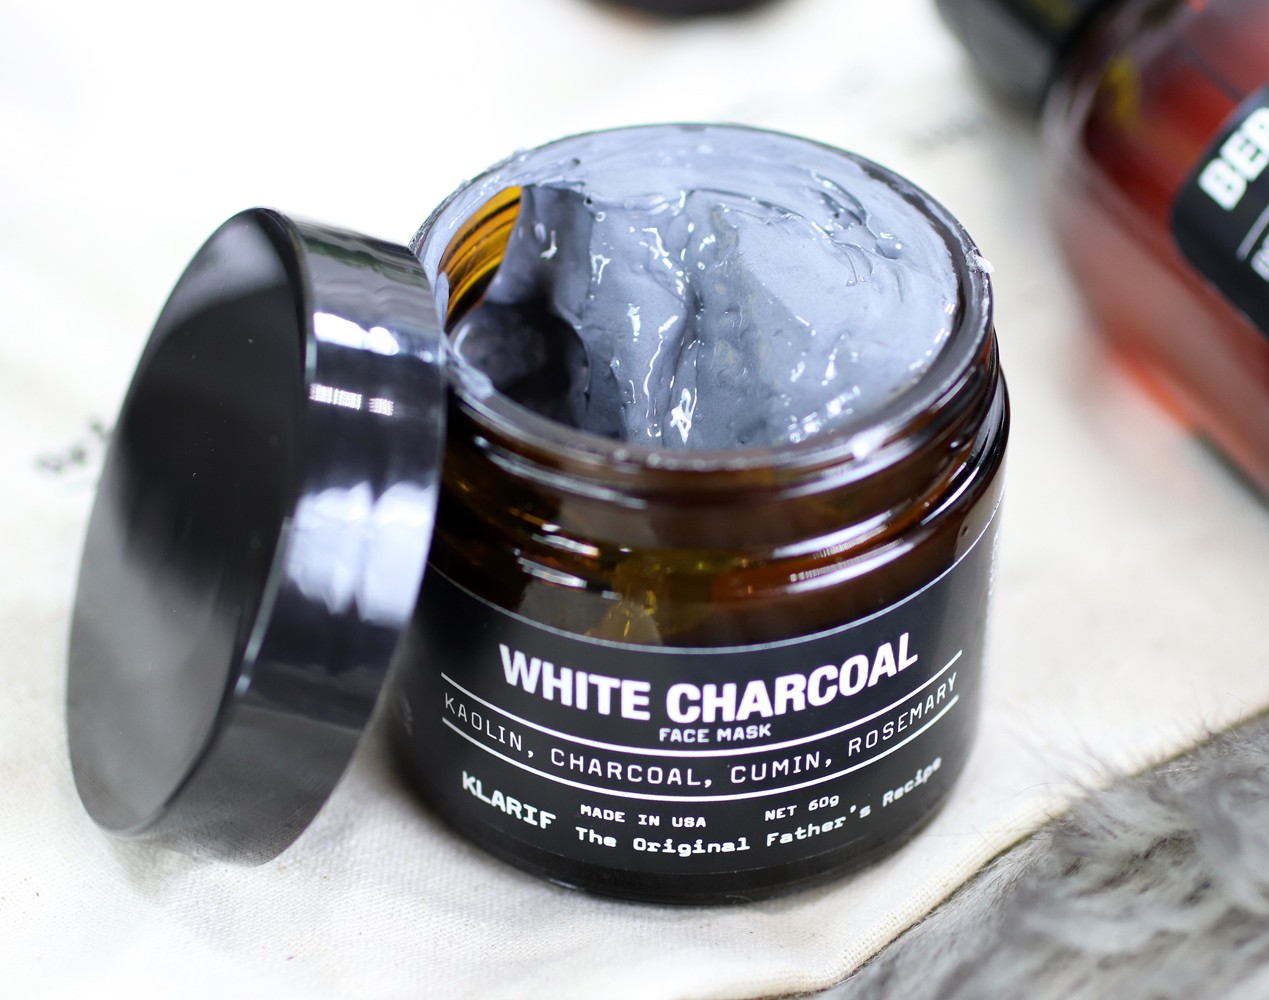 Klarif White Charcoal Face Mask Review - Klarif beauty products by popular Los Angeles cruelty free beauty blogger My Beauty Bunny